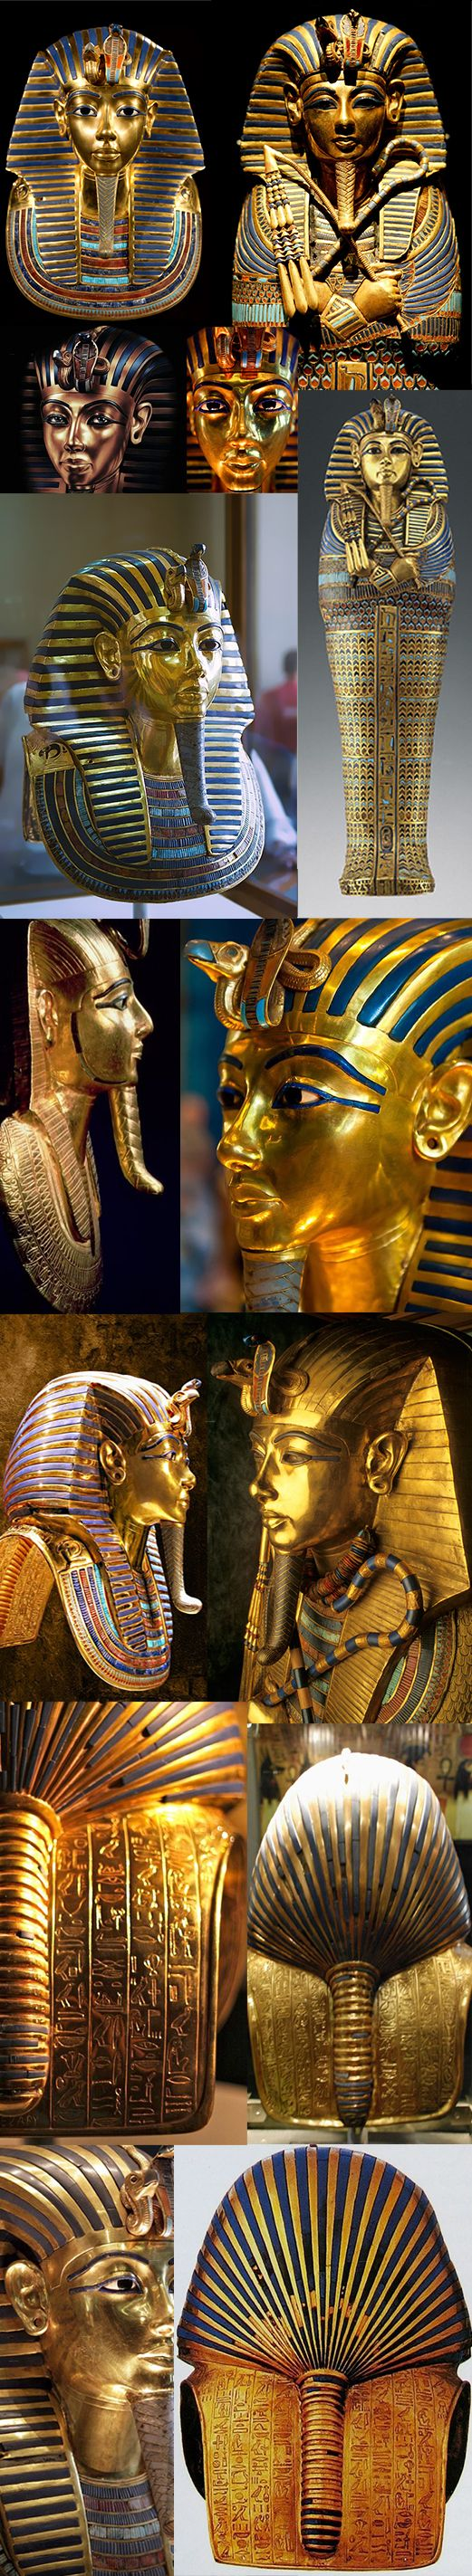 Cosmic Ordering Secrets - Only three pairs are the real burst of pharaoh tutankamun.The rest are modern fakes..guess which ones.. 3 Steps To Living A Life Full Of Abundance